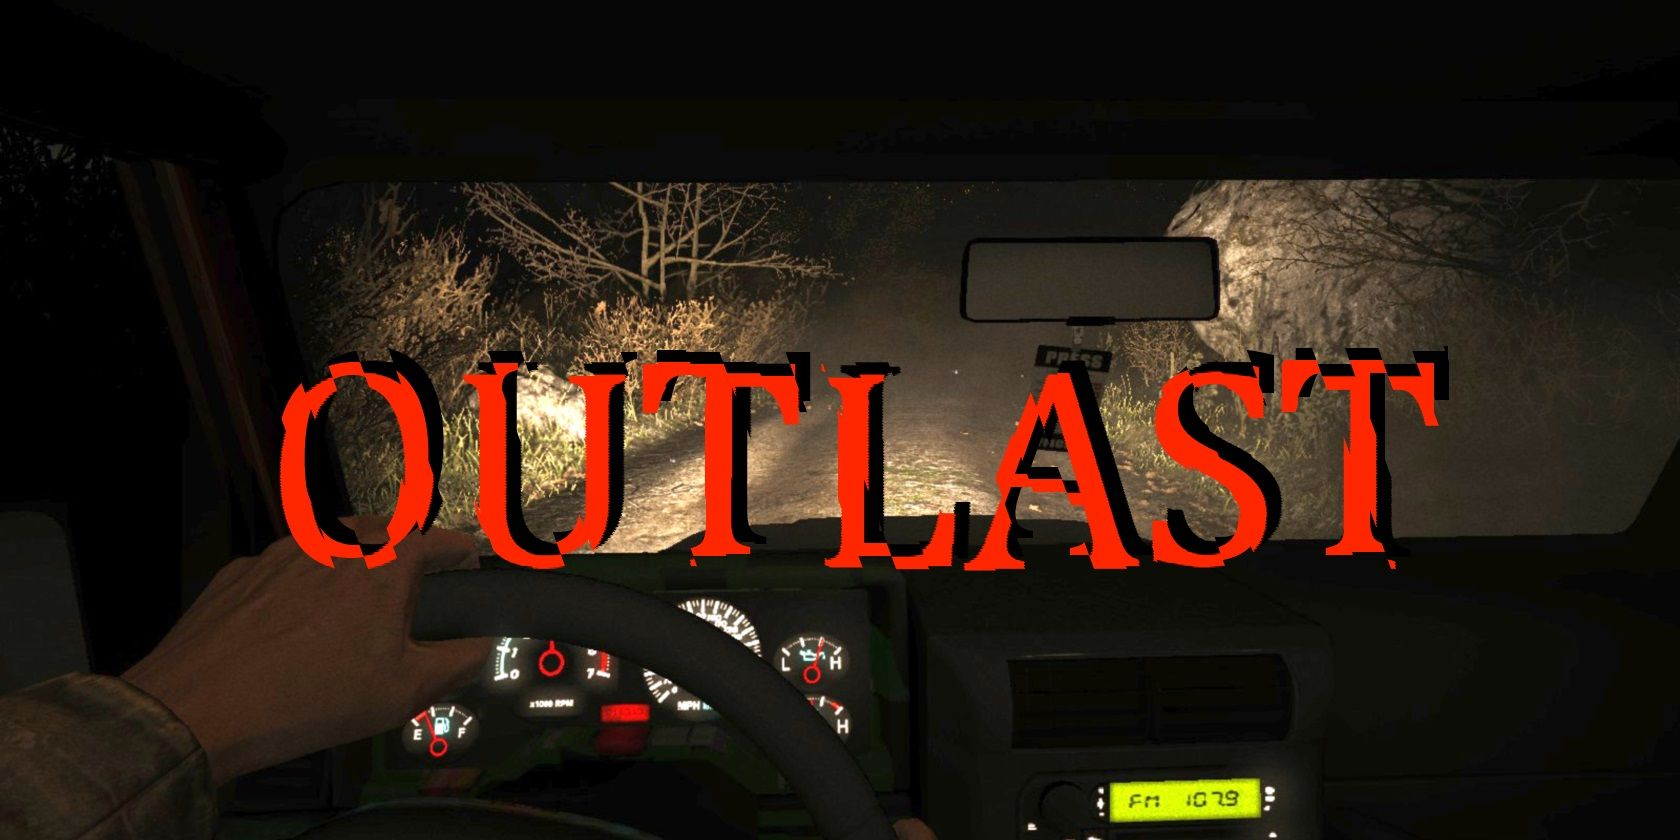 Outlast, PC Game [Spoiler Free] review